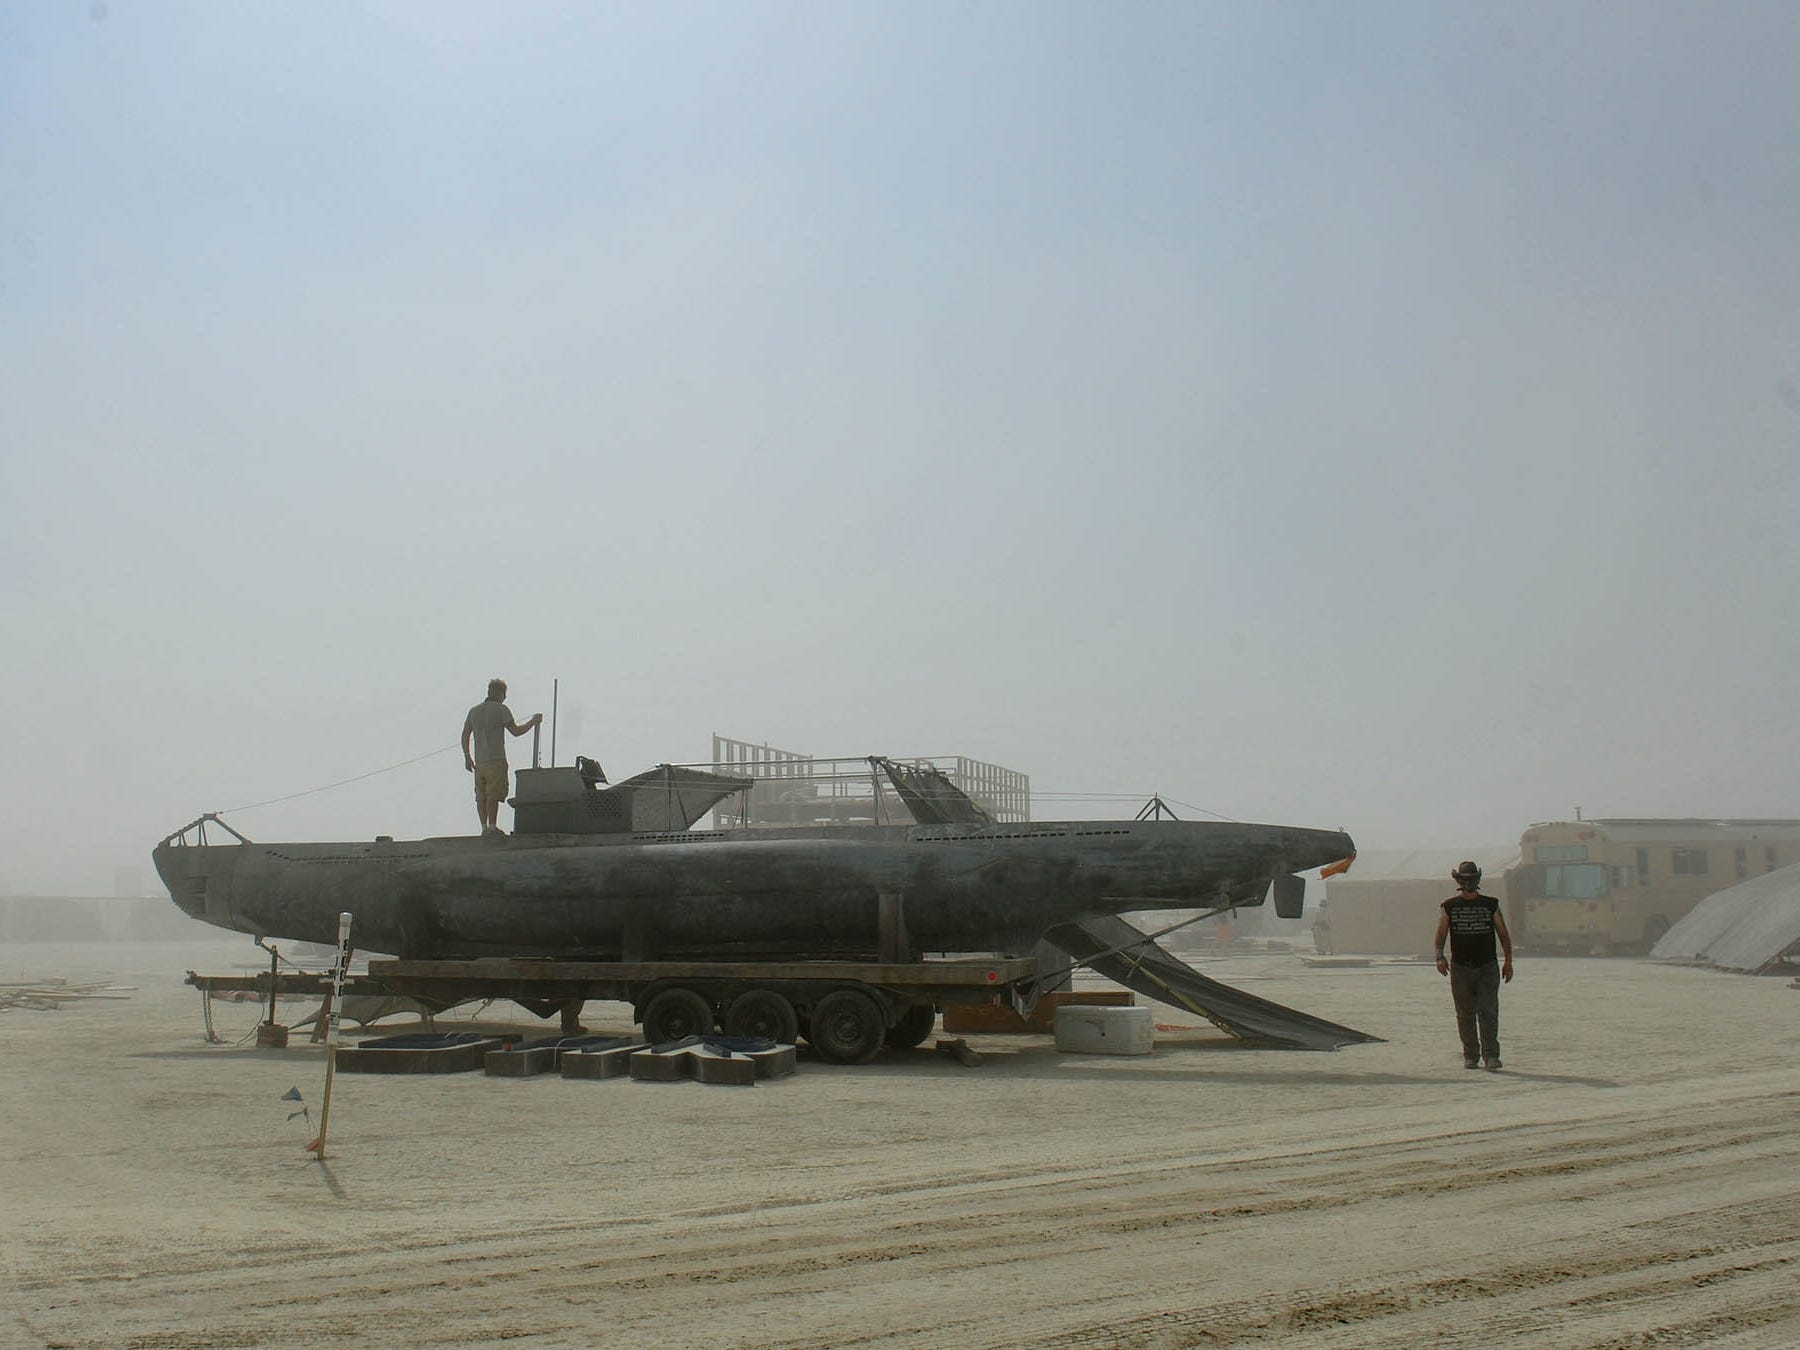 On Saturday artist and burners set up for a week on the playa.